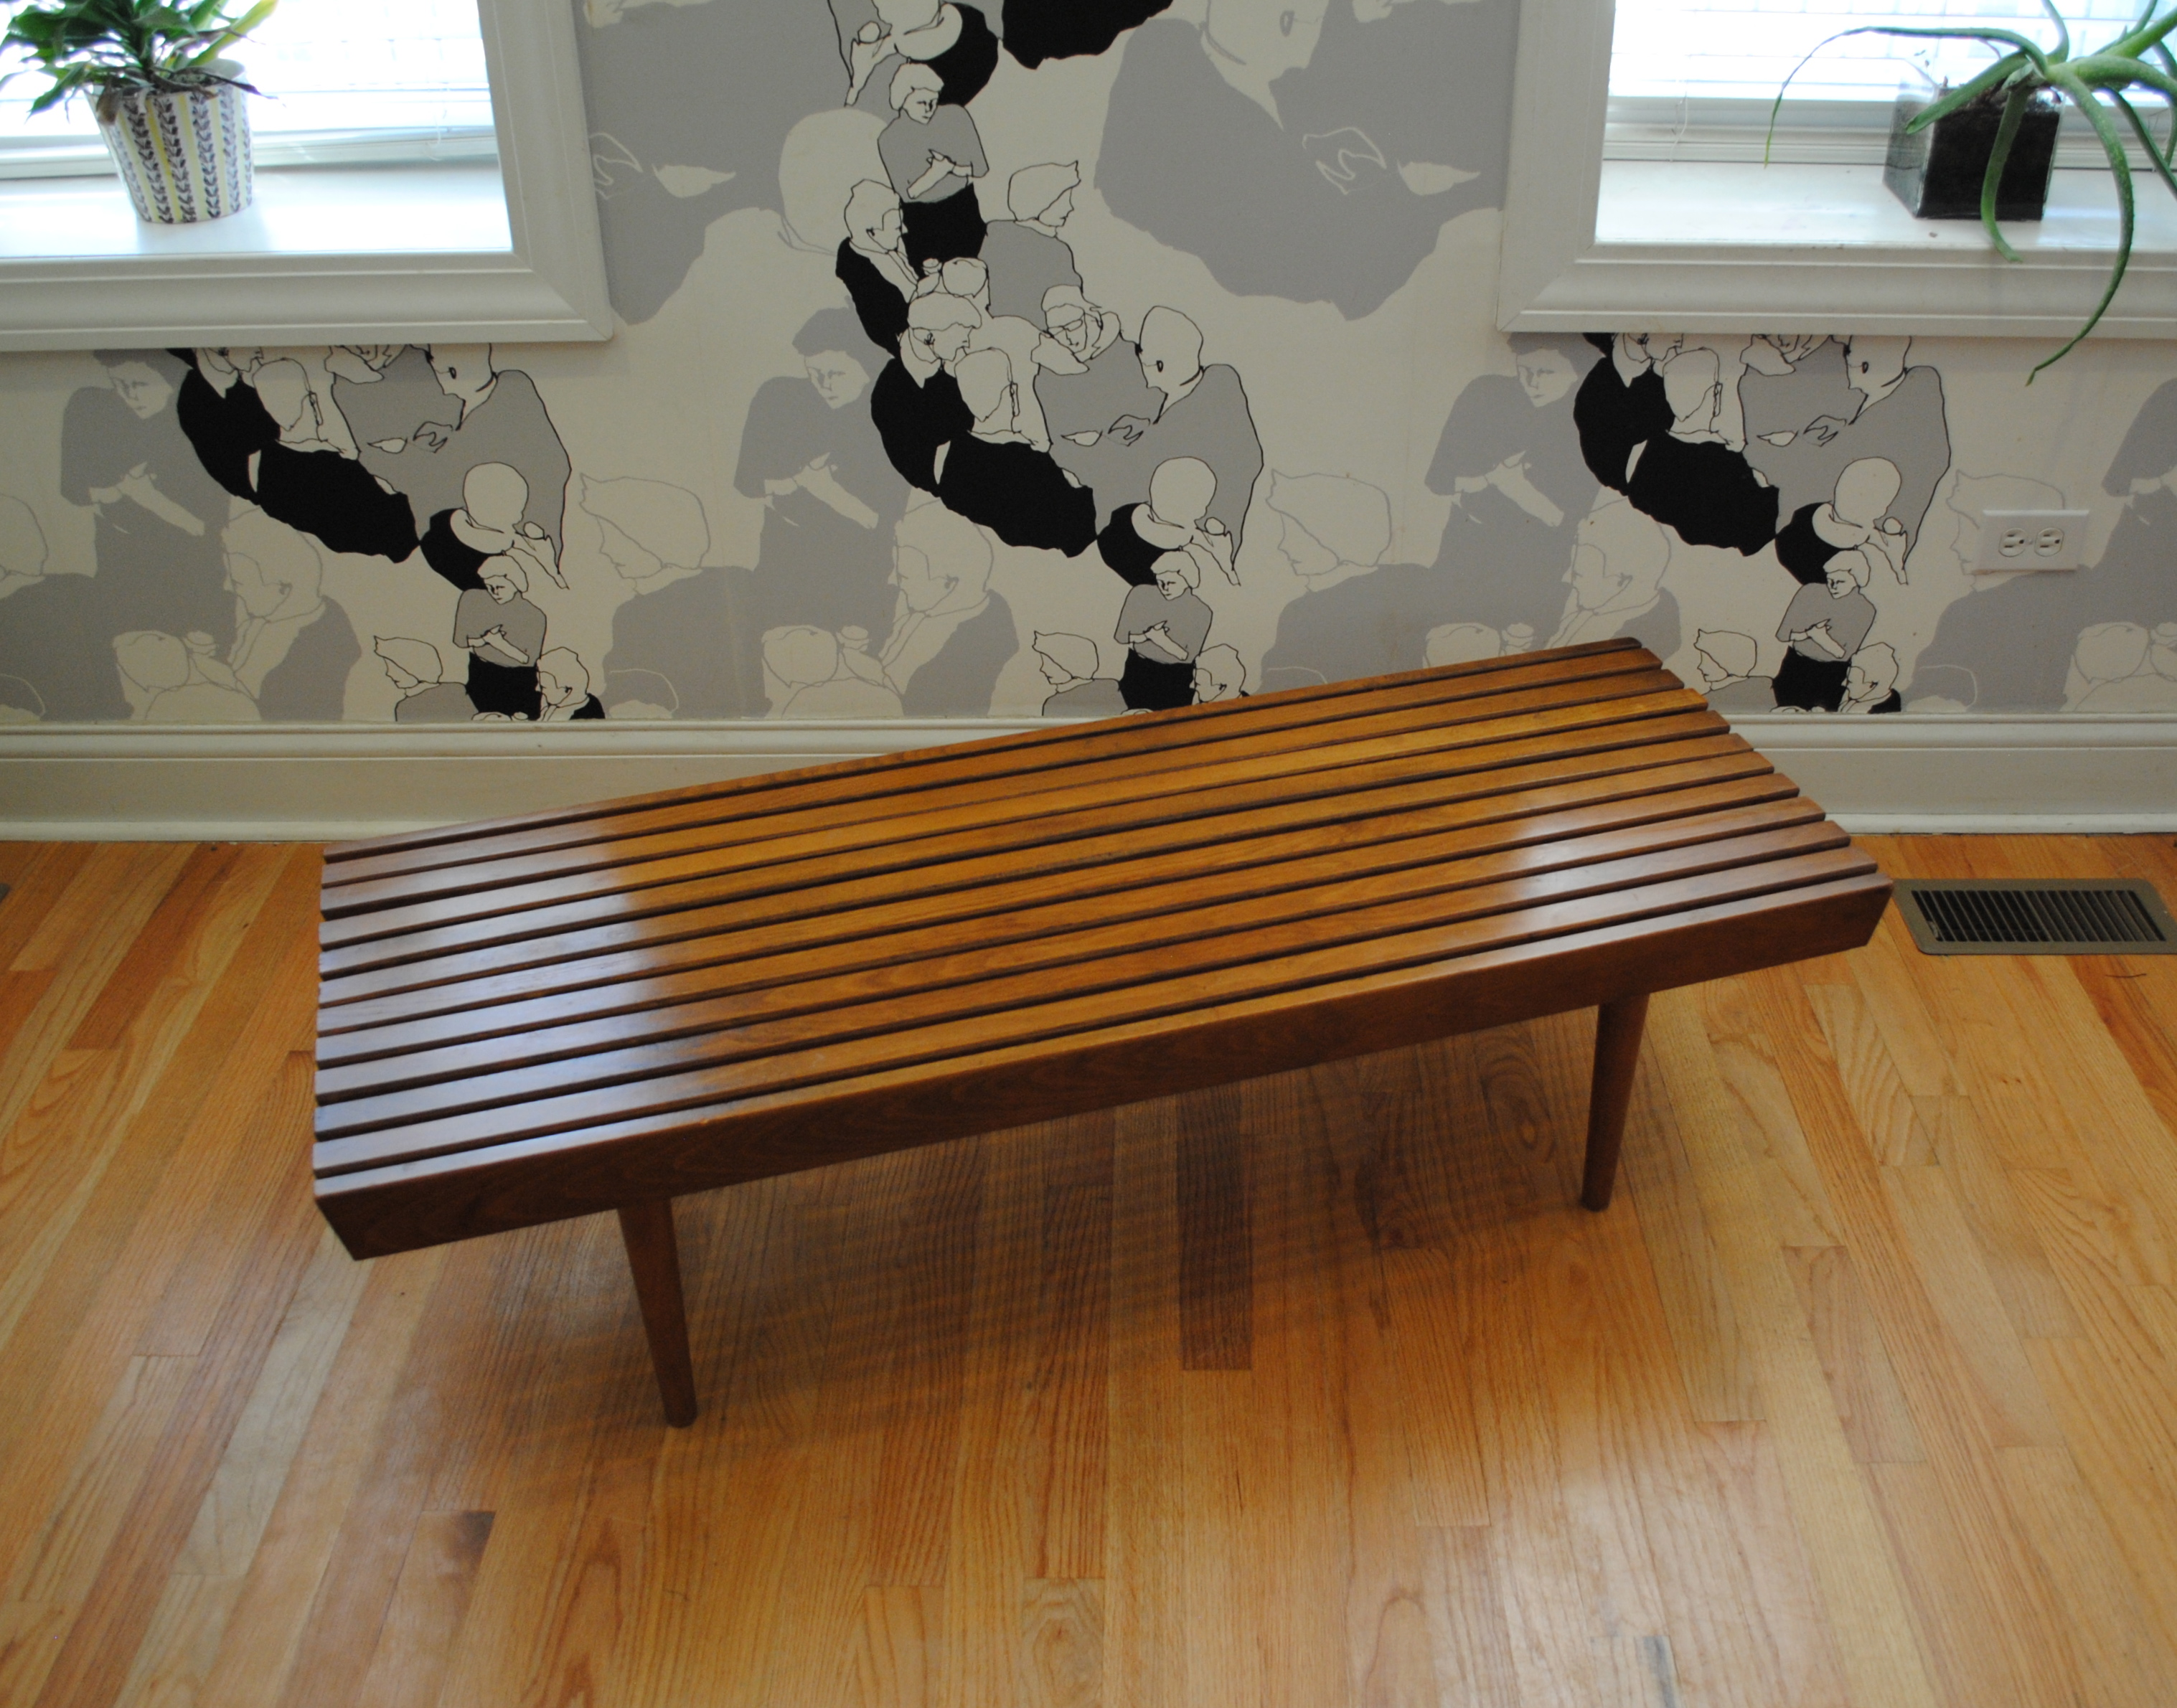 Mid century modern slat bench phylum furniture mid century modern slat bench coffee table dimensions are 48l x 18w x 1275h please contact me with any questions geotapseo Gallery